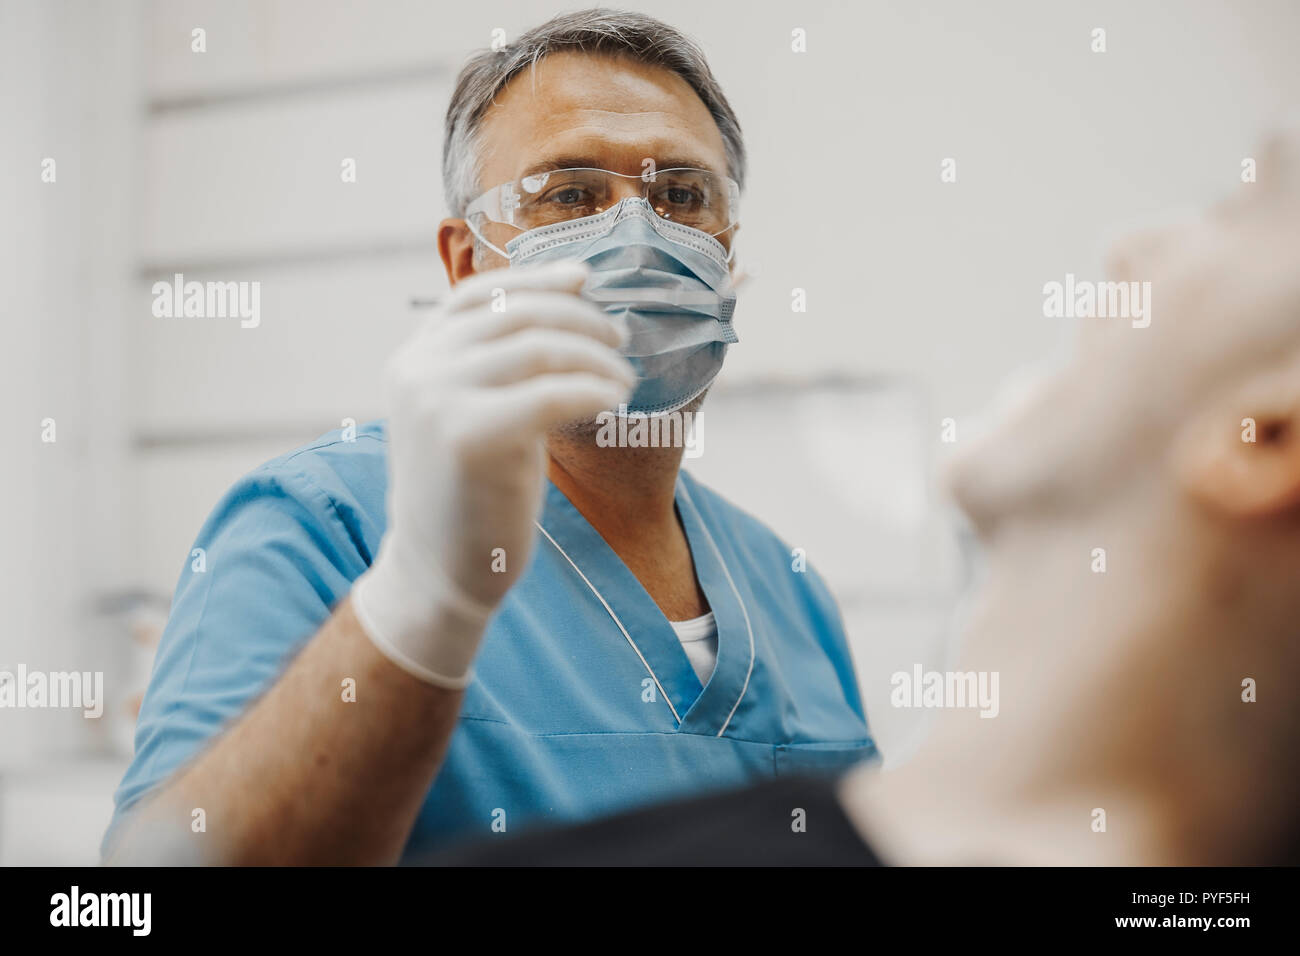 Close up of dentist in blue uniform checking up client teeth health condition. Stock Photo